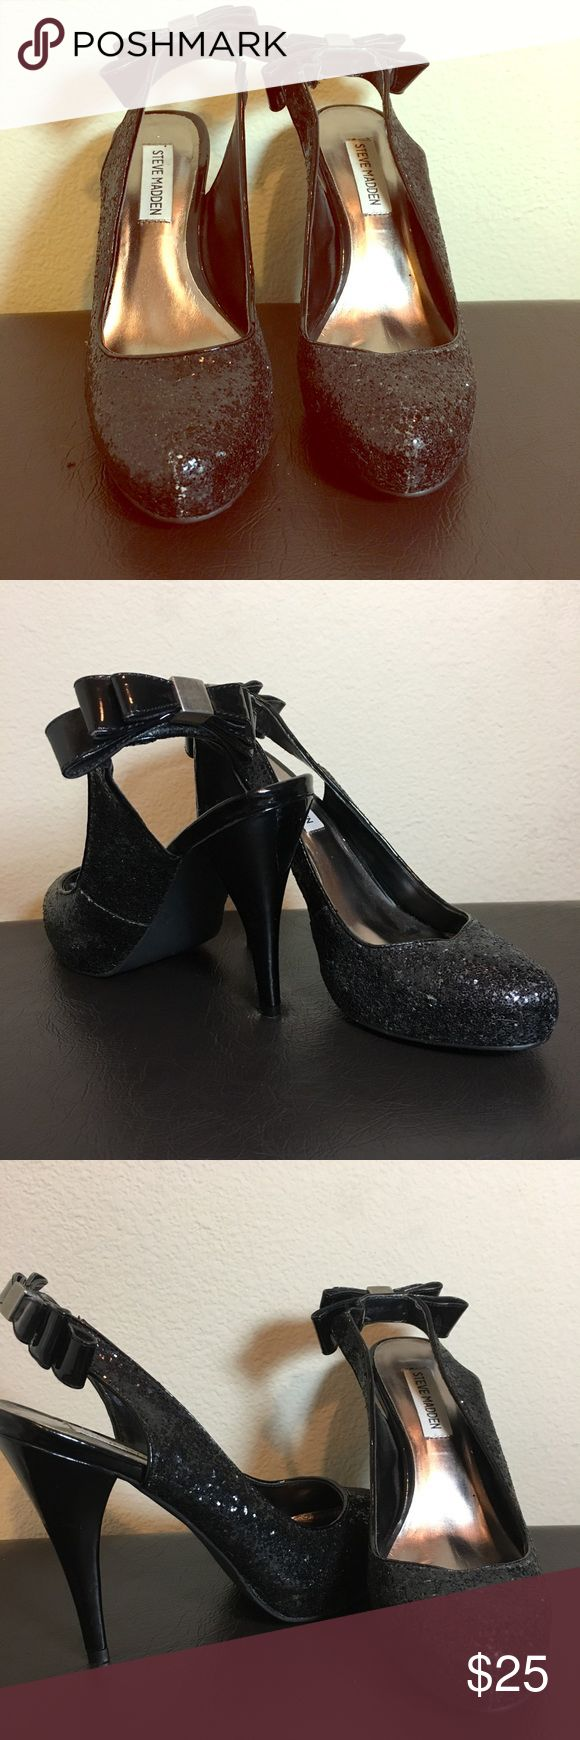 Steve Madden Sparkly High Heels Great condition sparkly high heels by Steve Madden. Steve Madden Shoes Heels